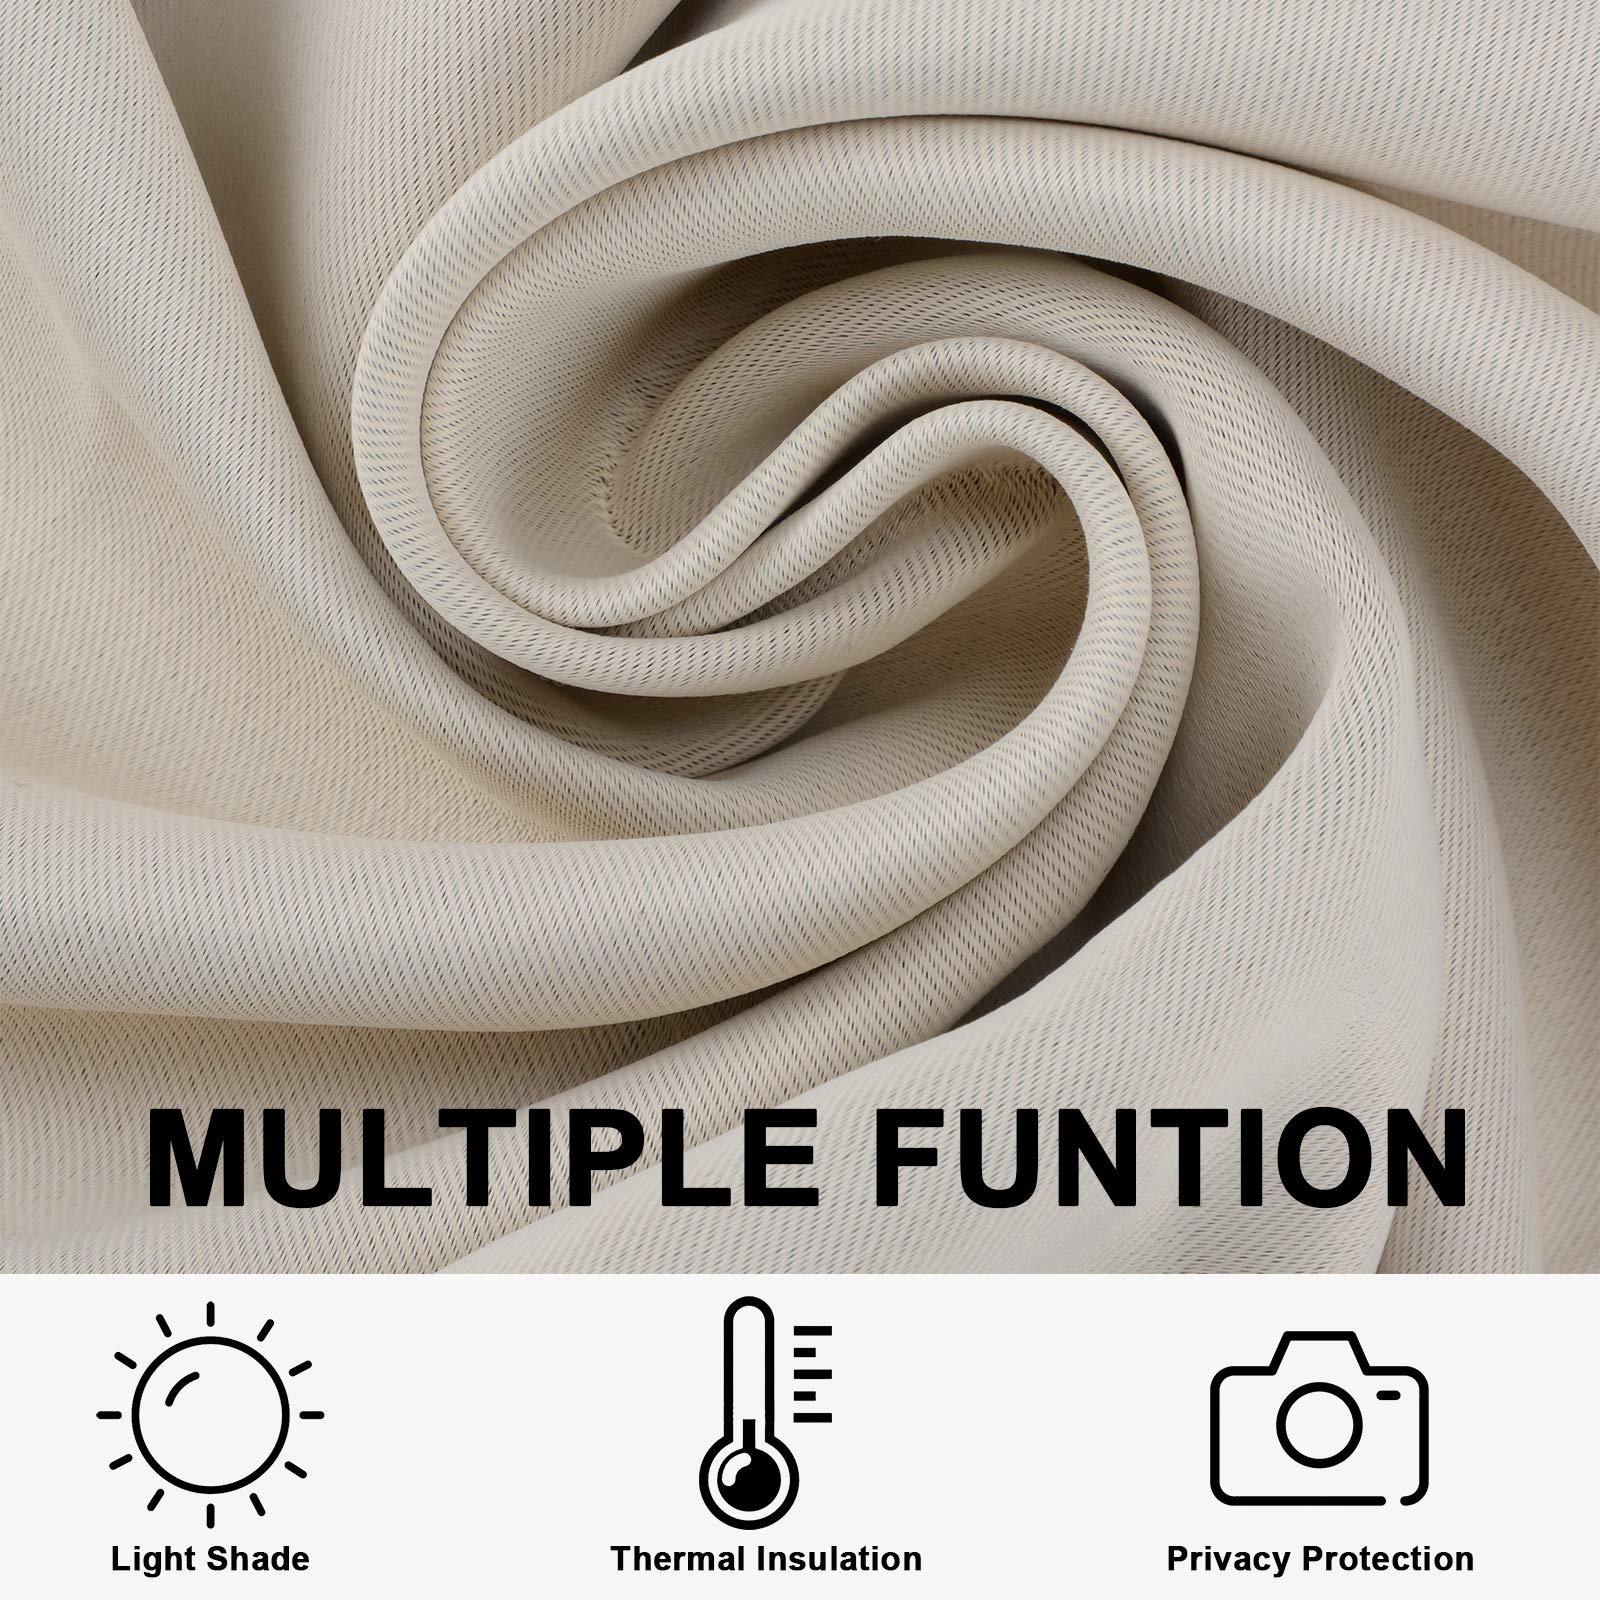 Voilarmart Blackout Curtains 52 x 63 Thermal Insulated Light Reducing Grommet Top Window Curtain Set for Bedroom, Living Room,2 Panels - Beige